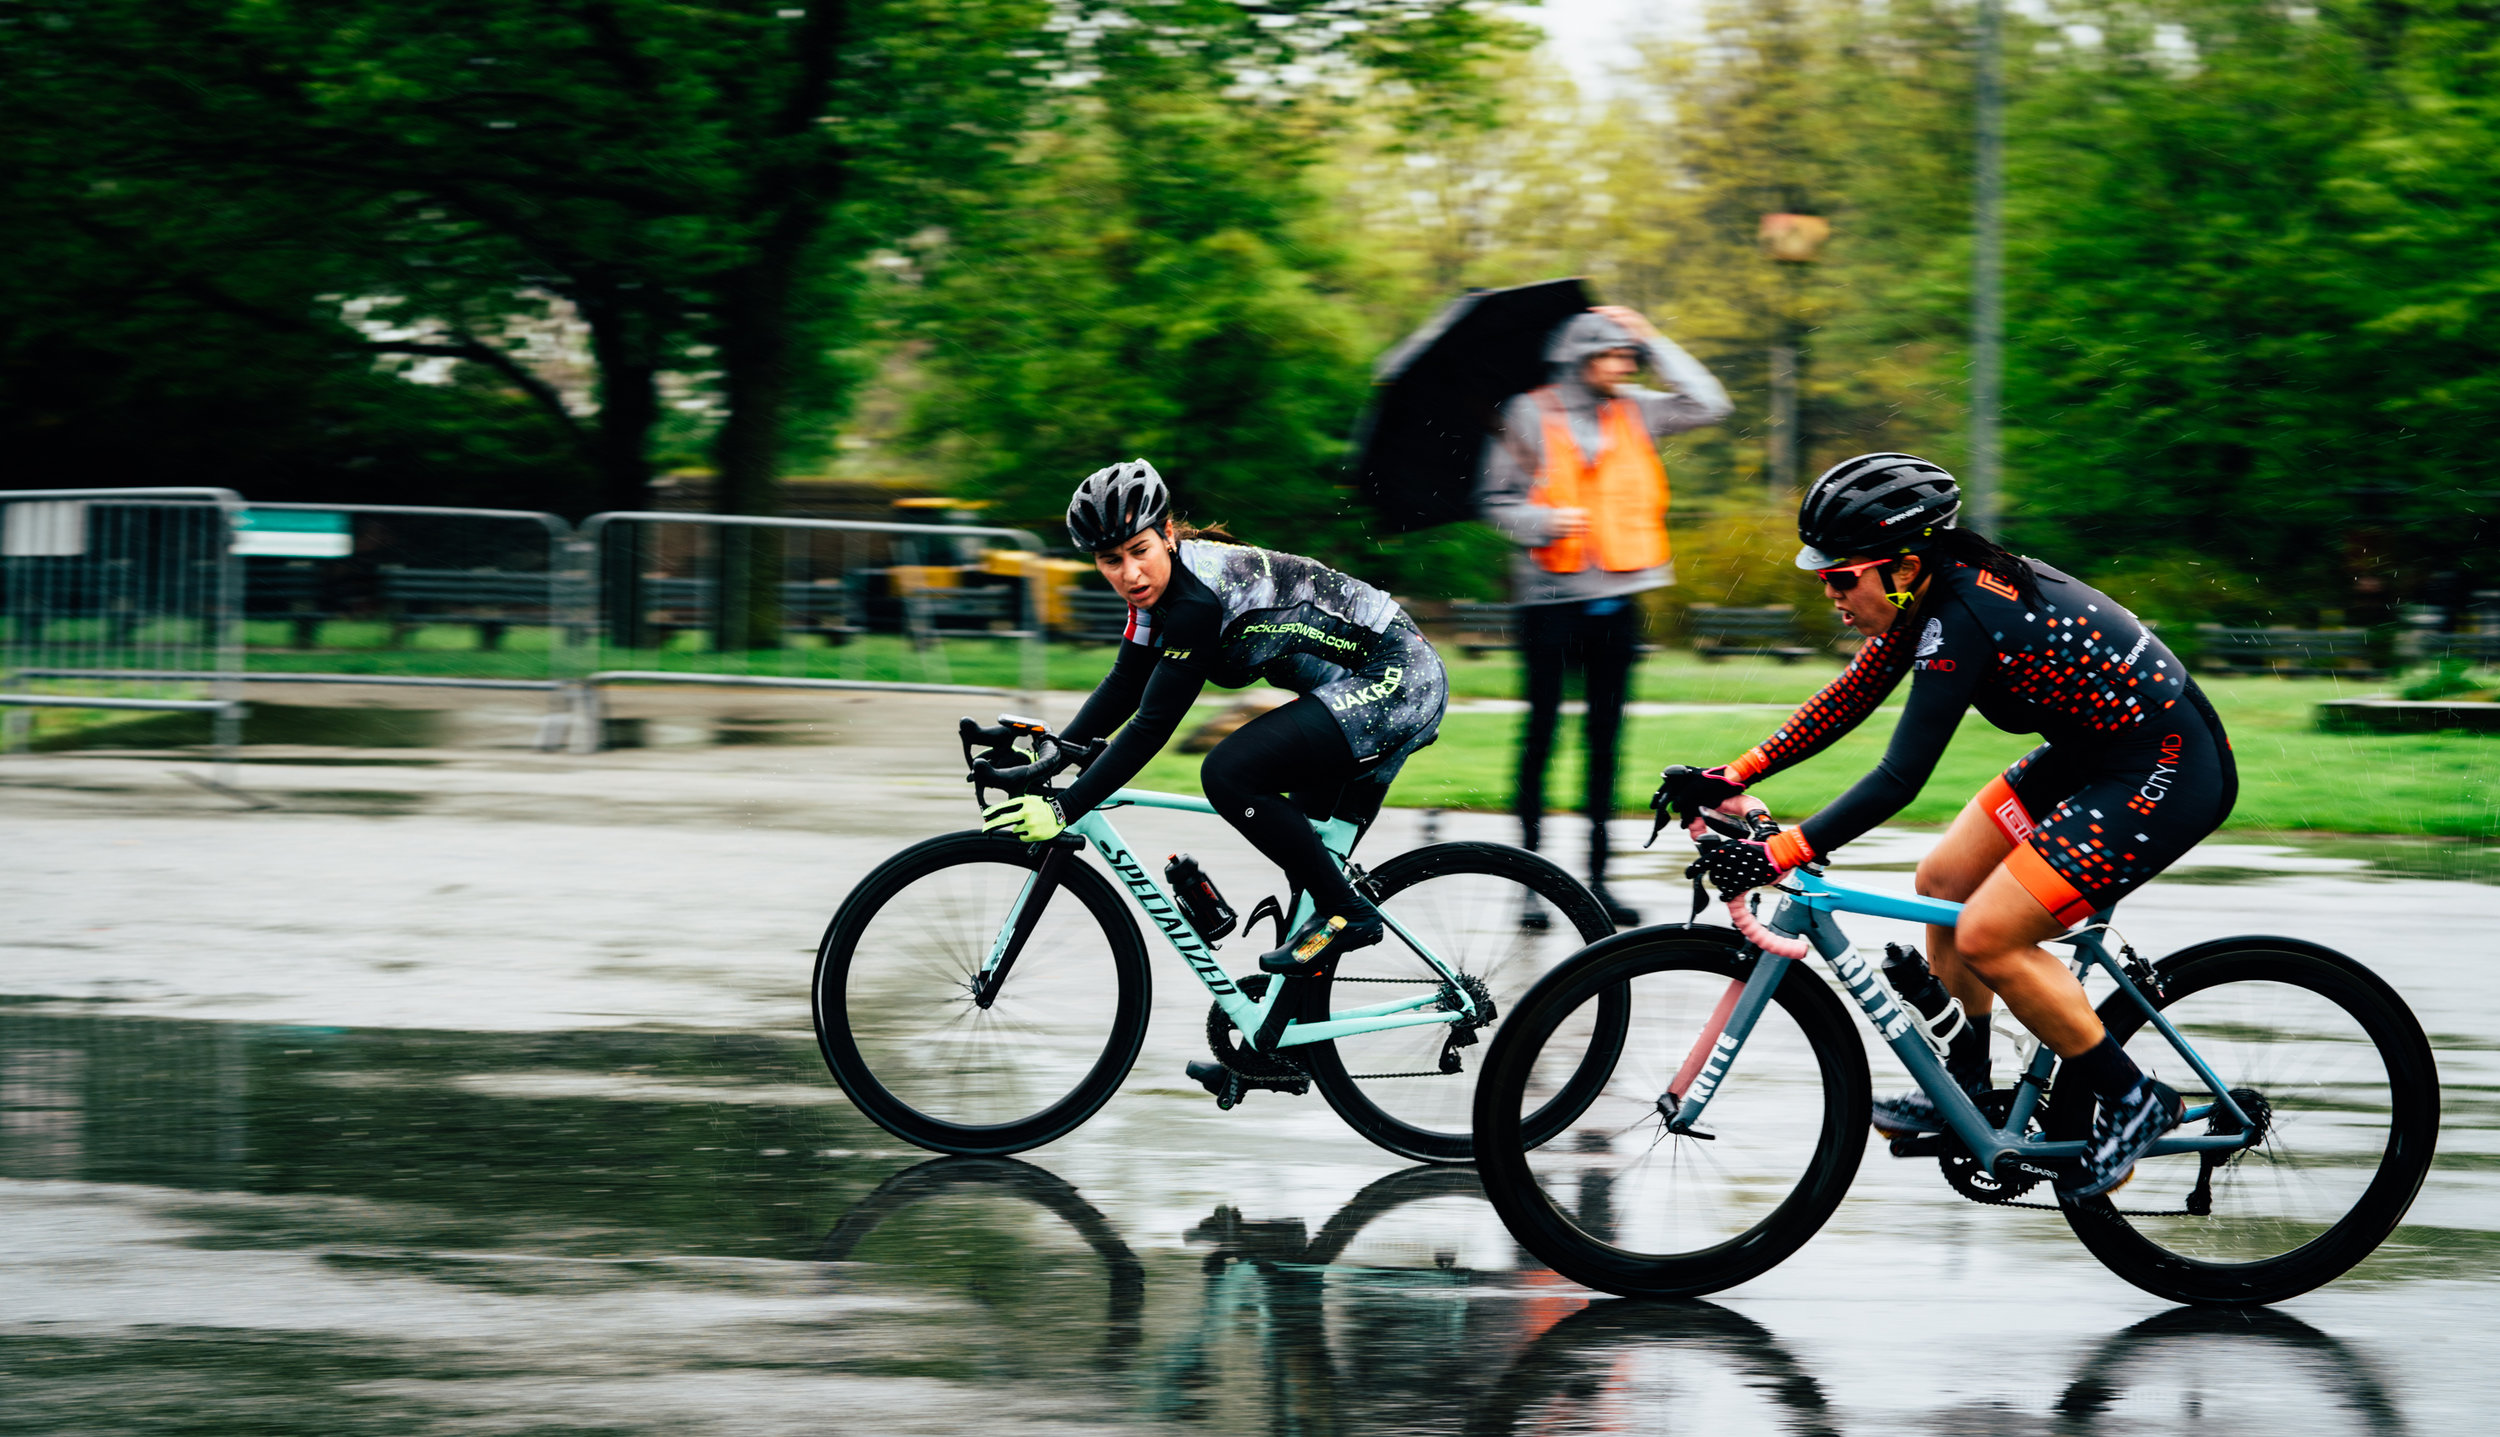 Photo Rhetoric - To Be Determined - Zach Koop Memorial Crit at Orchard Bearch-3032.jpg